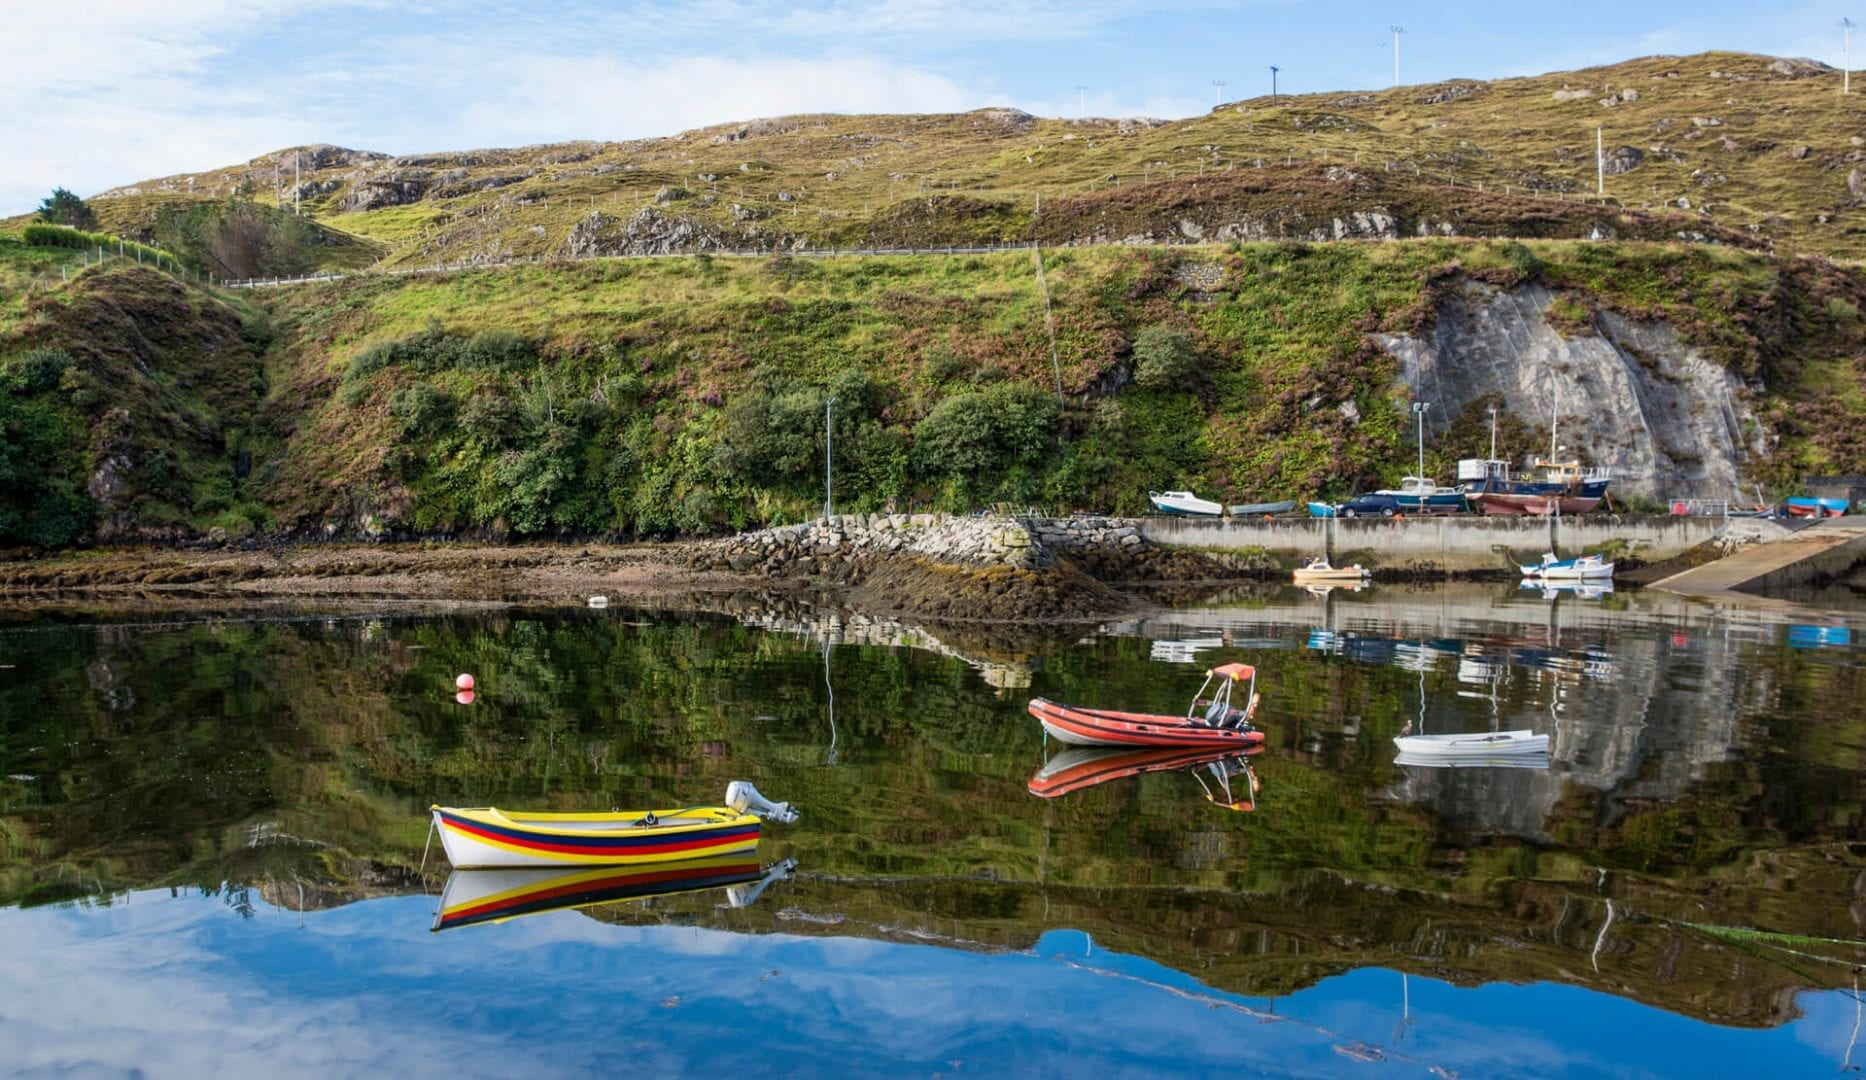 Boats and beach on the Isle of Harris